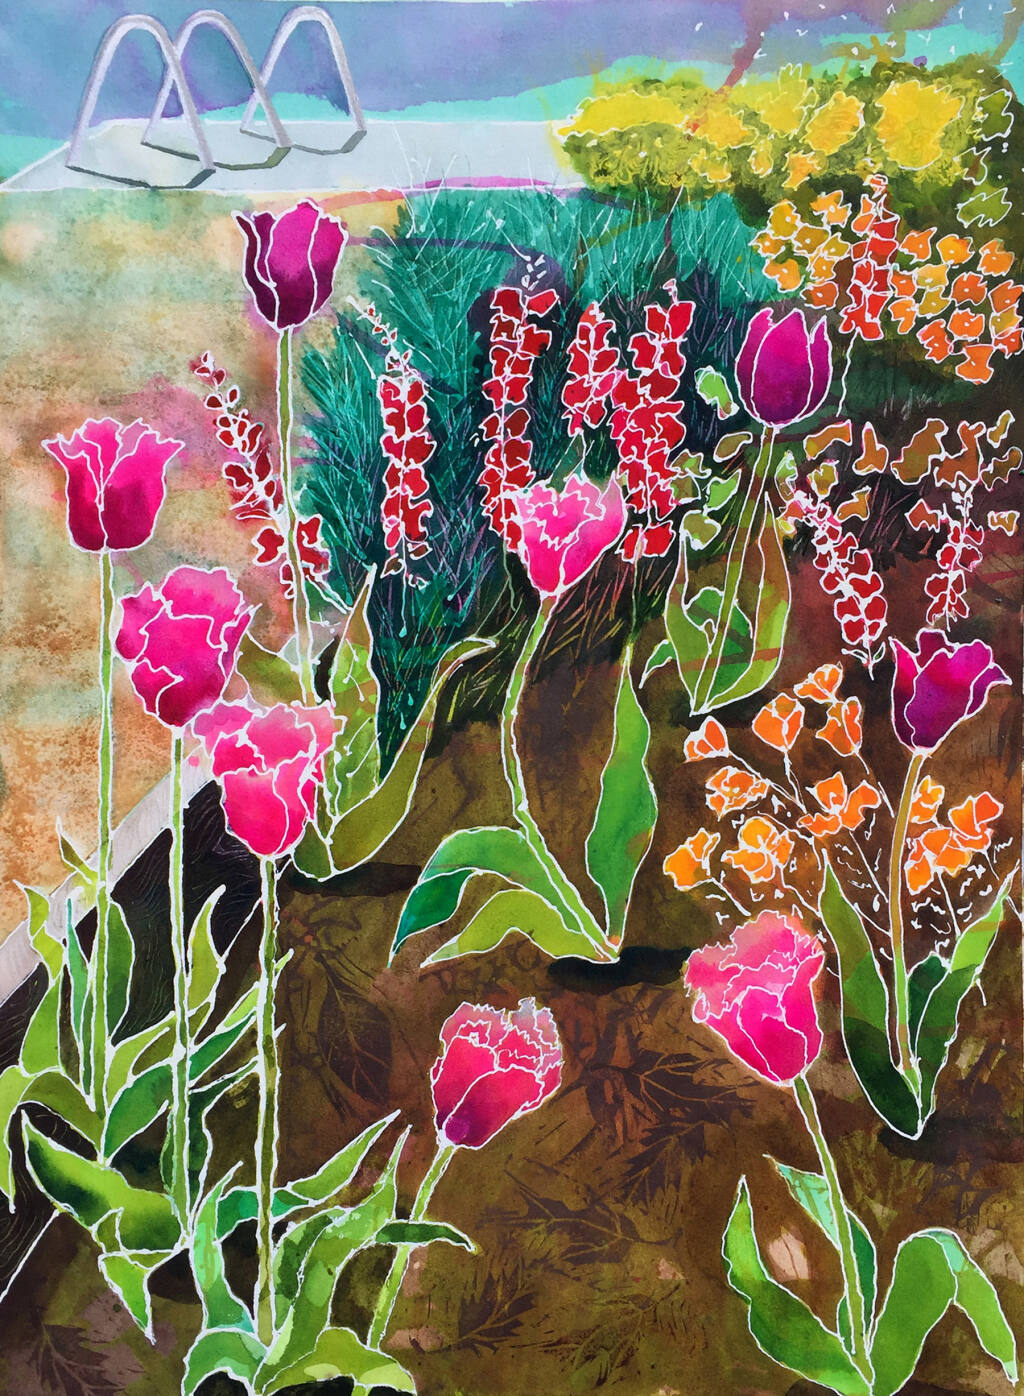 """Tulips with Bike Rack"" by Marilyn J. Dizikes, who works in acrylics, watercolor, printmaking and clay. (Petaluma Arts Association)"